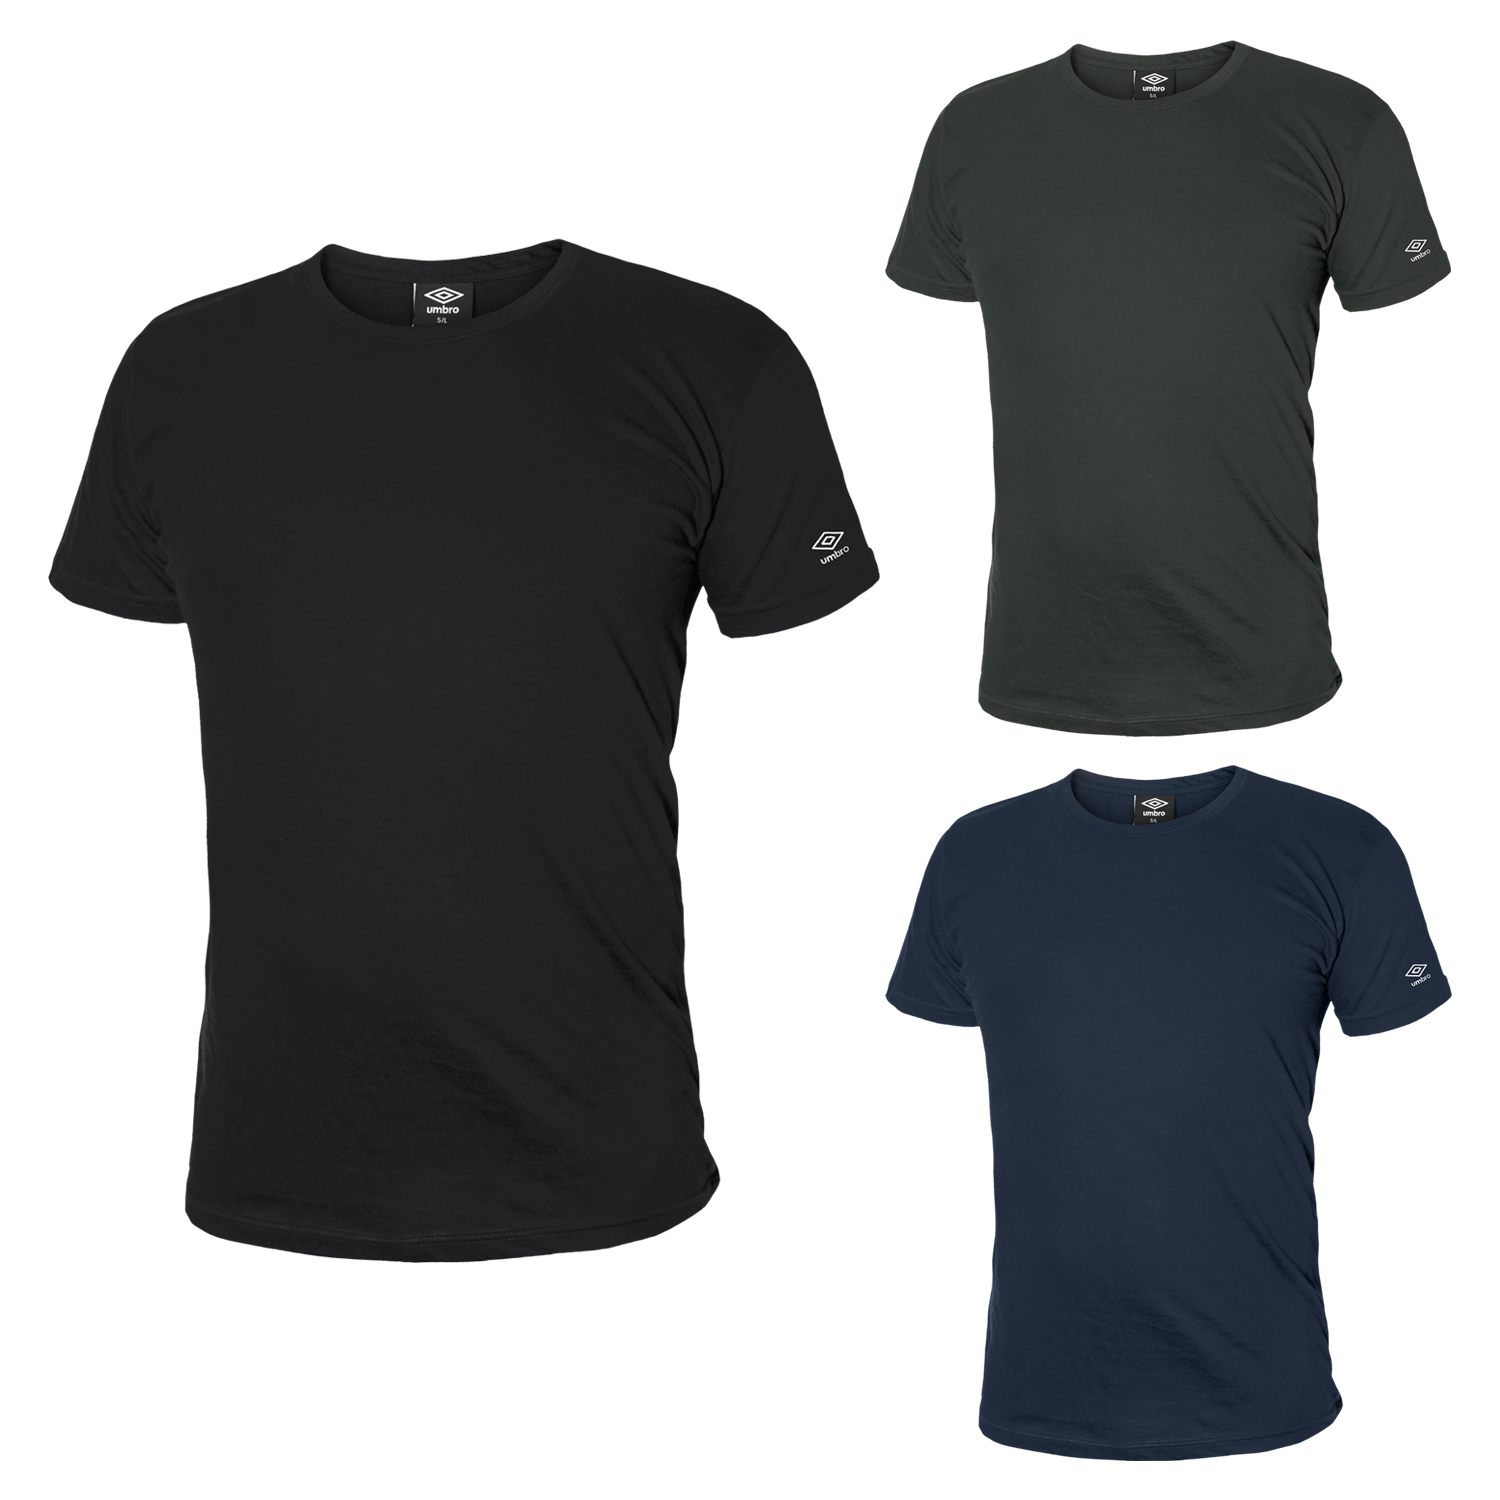 Pack-3-T-Shirt-Uomo-UMBRO-Manica-Corta-Assortito-Art-6047-8